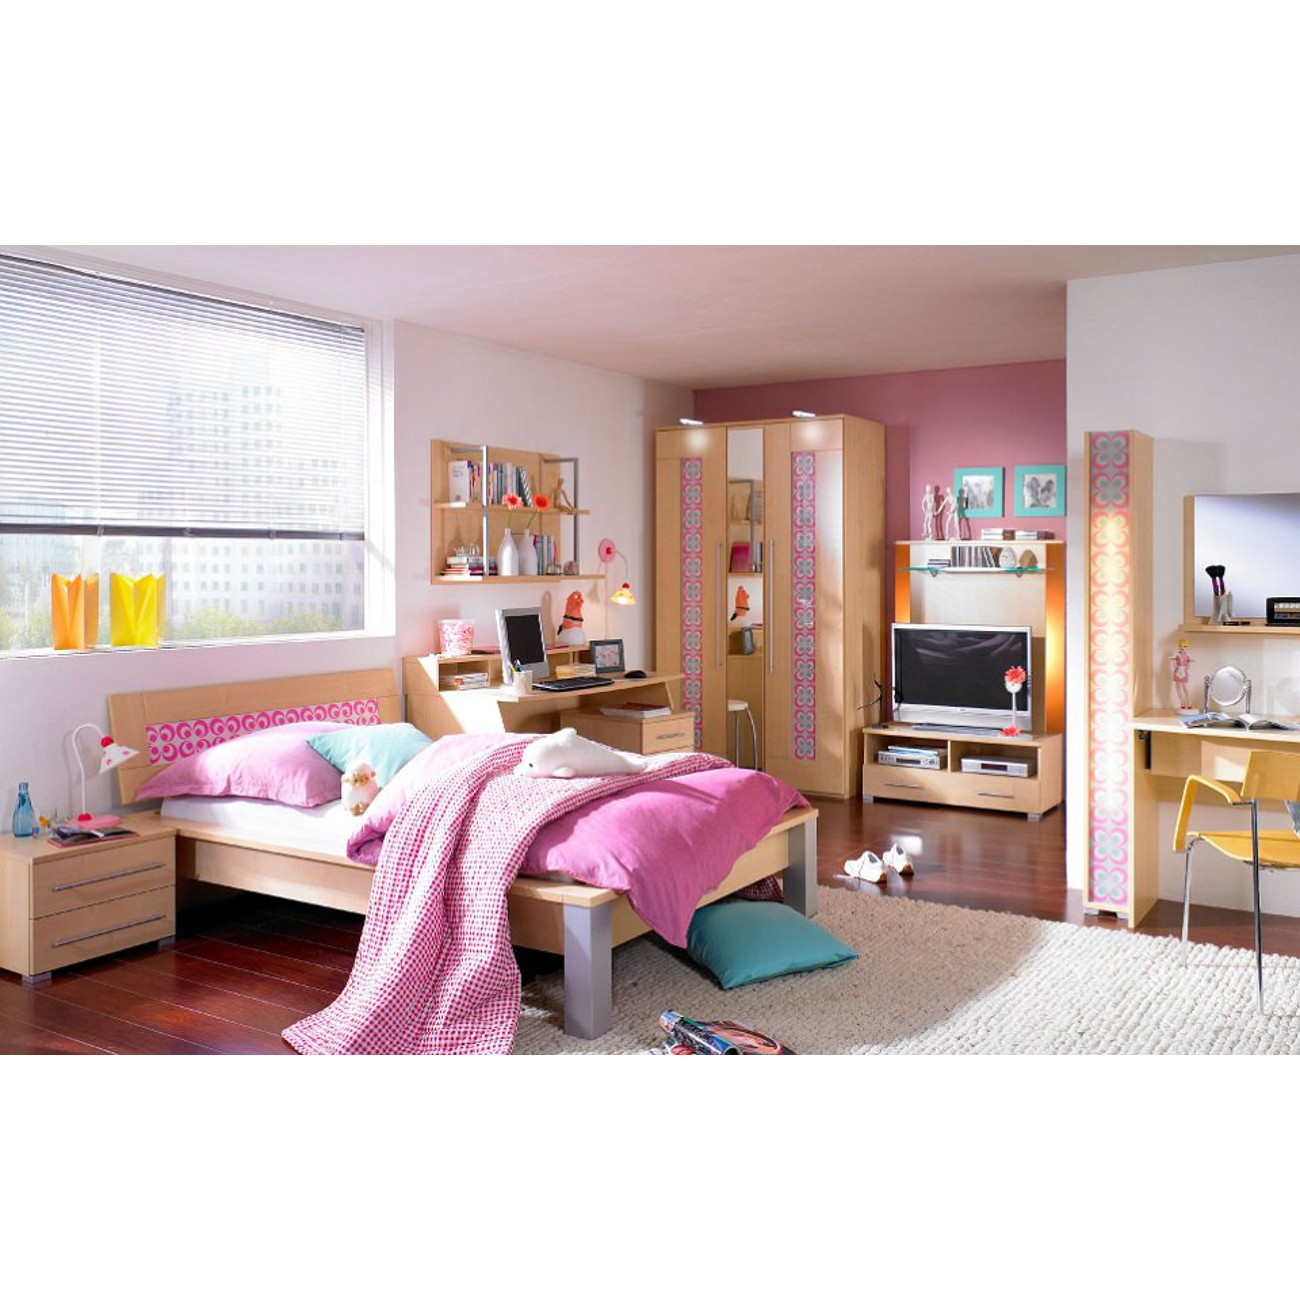 sch ne wand leseleuchte f rs kinderzimmer mit flexarm. Black Bedroom Furniture Sets. Home Design Ideas